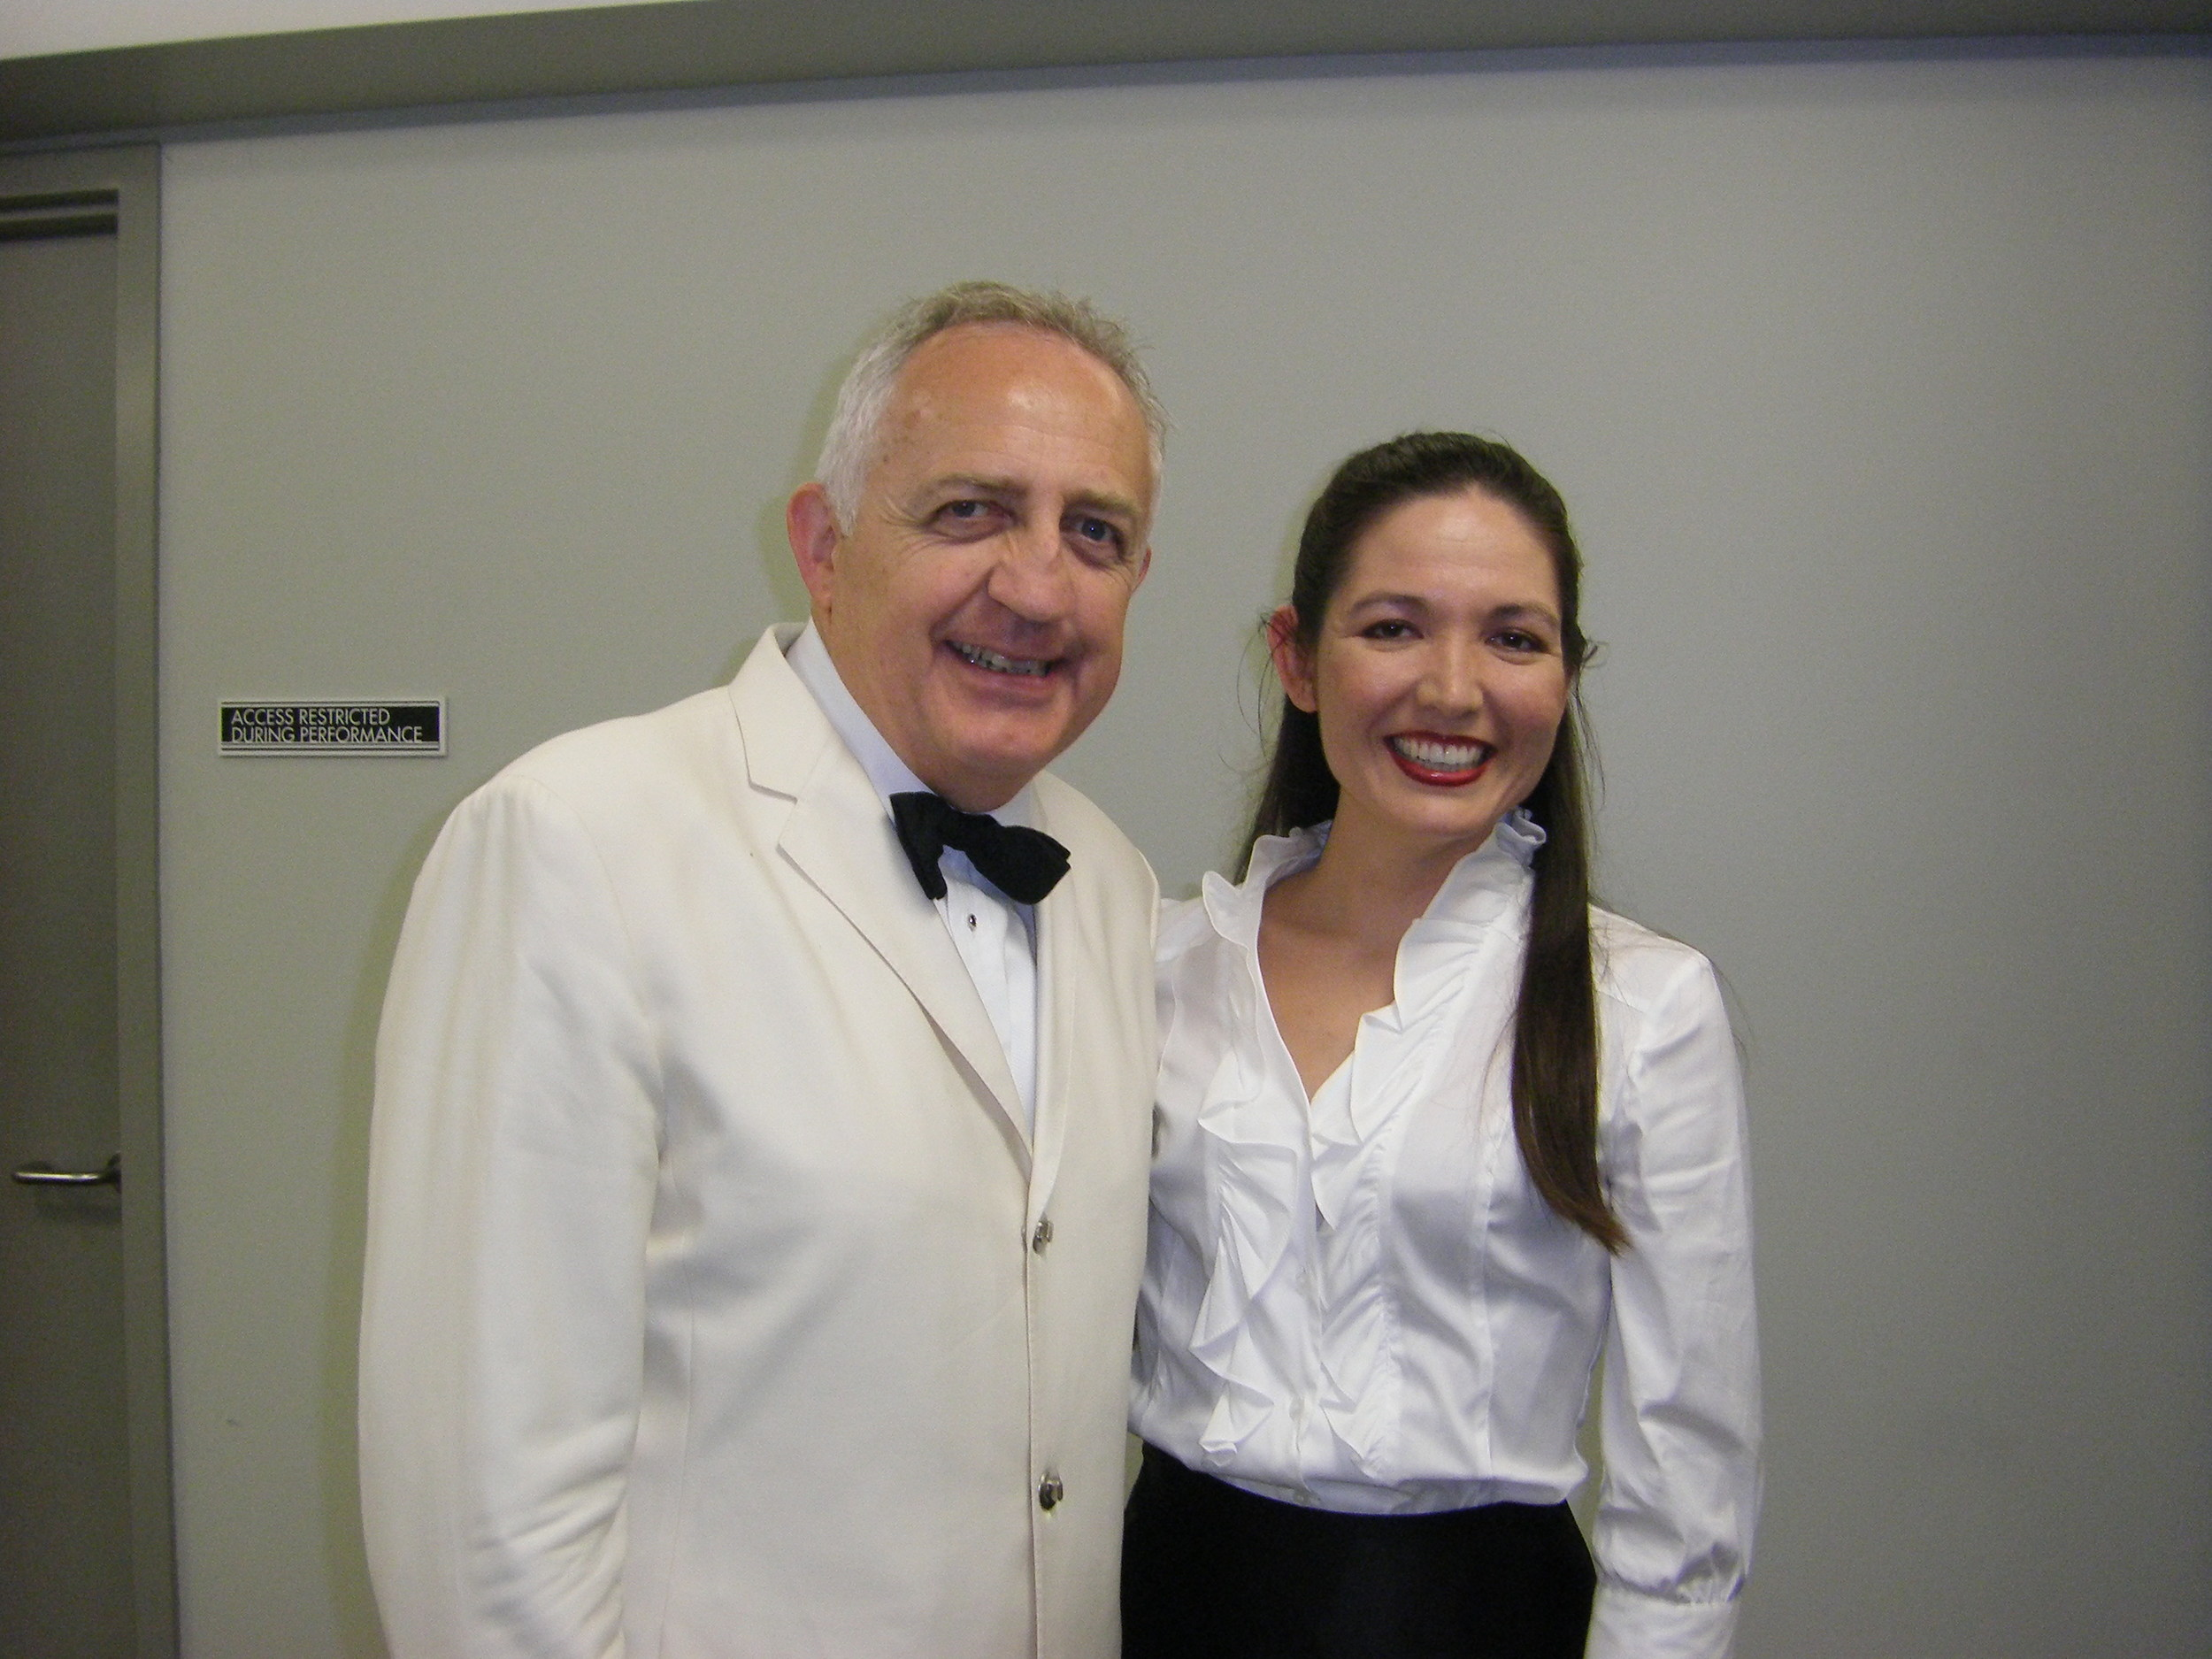 With Bramwell Tovey after performing as soloist on  Chichester Psalms  with the LA Philharmonic at the Hollywood Bowl